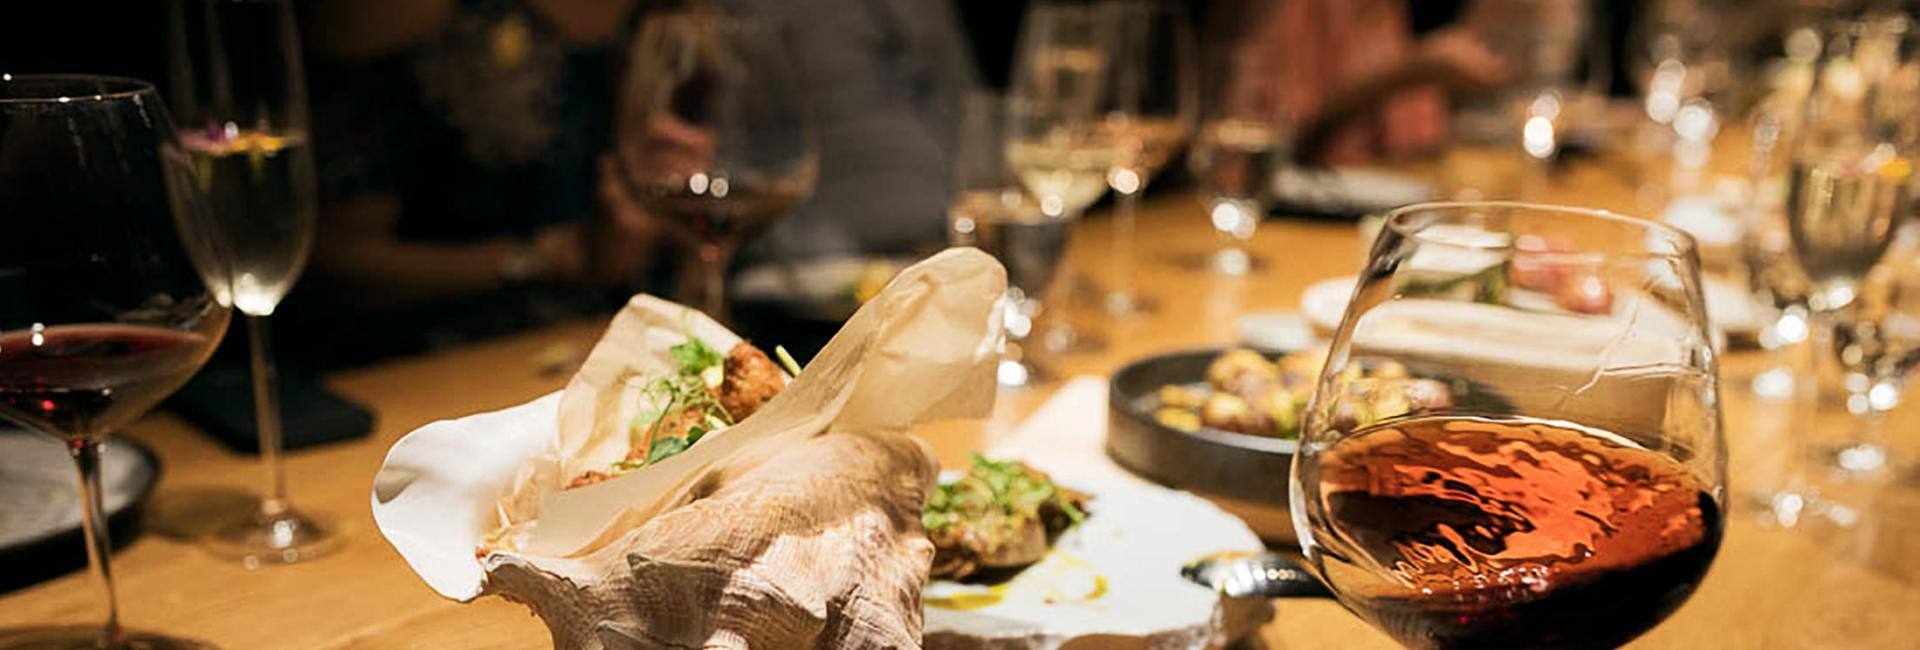 Conch shell on table with glass of red wine